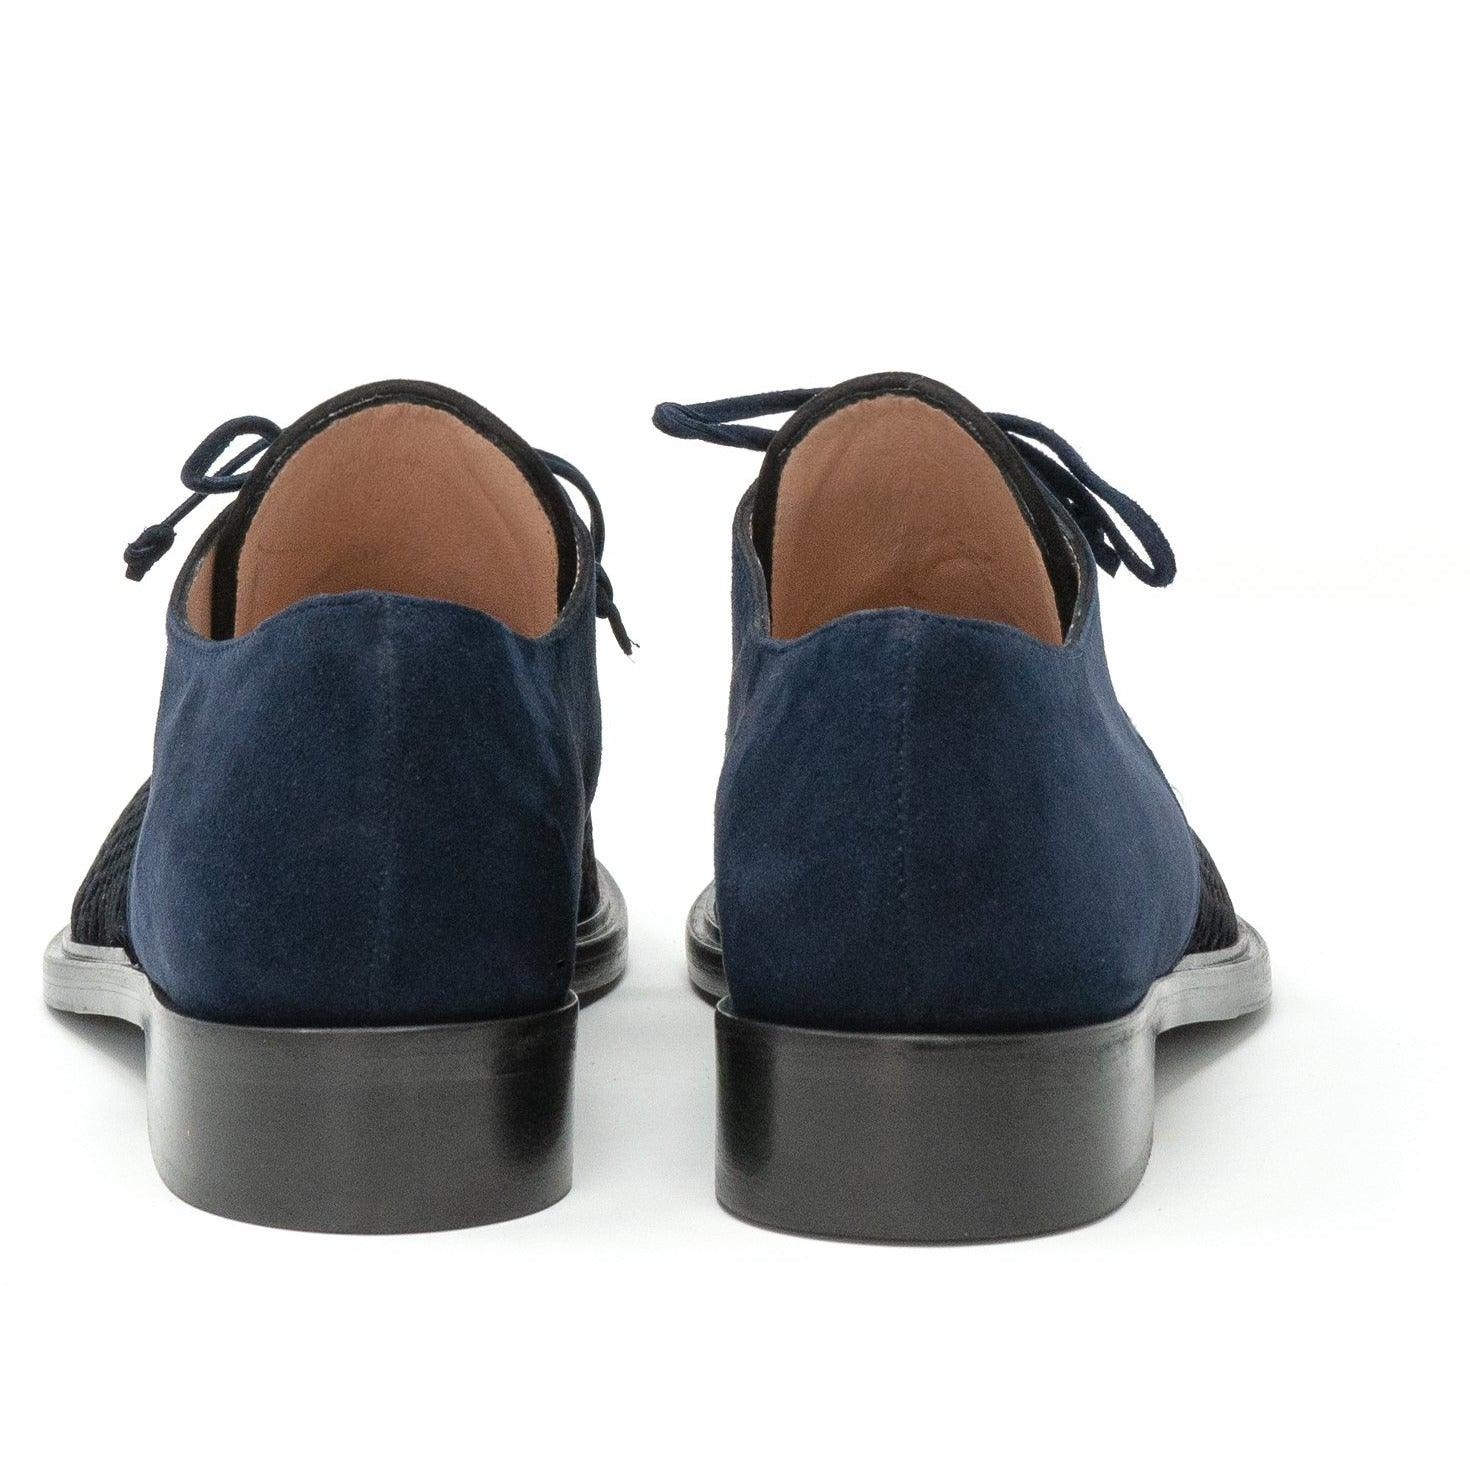 Women's Derby Lace-Up Shoes in Navy Blue